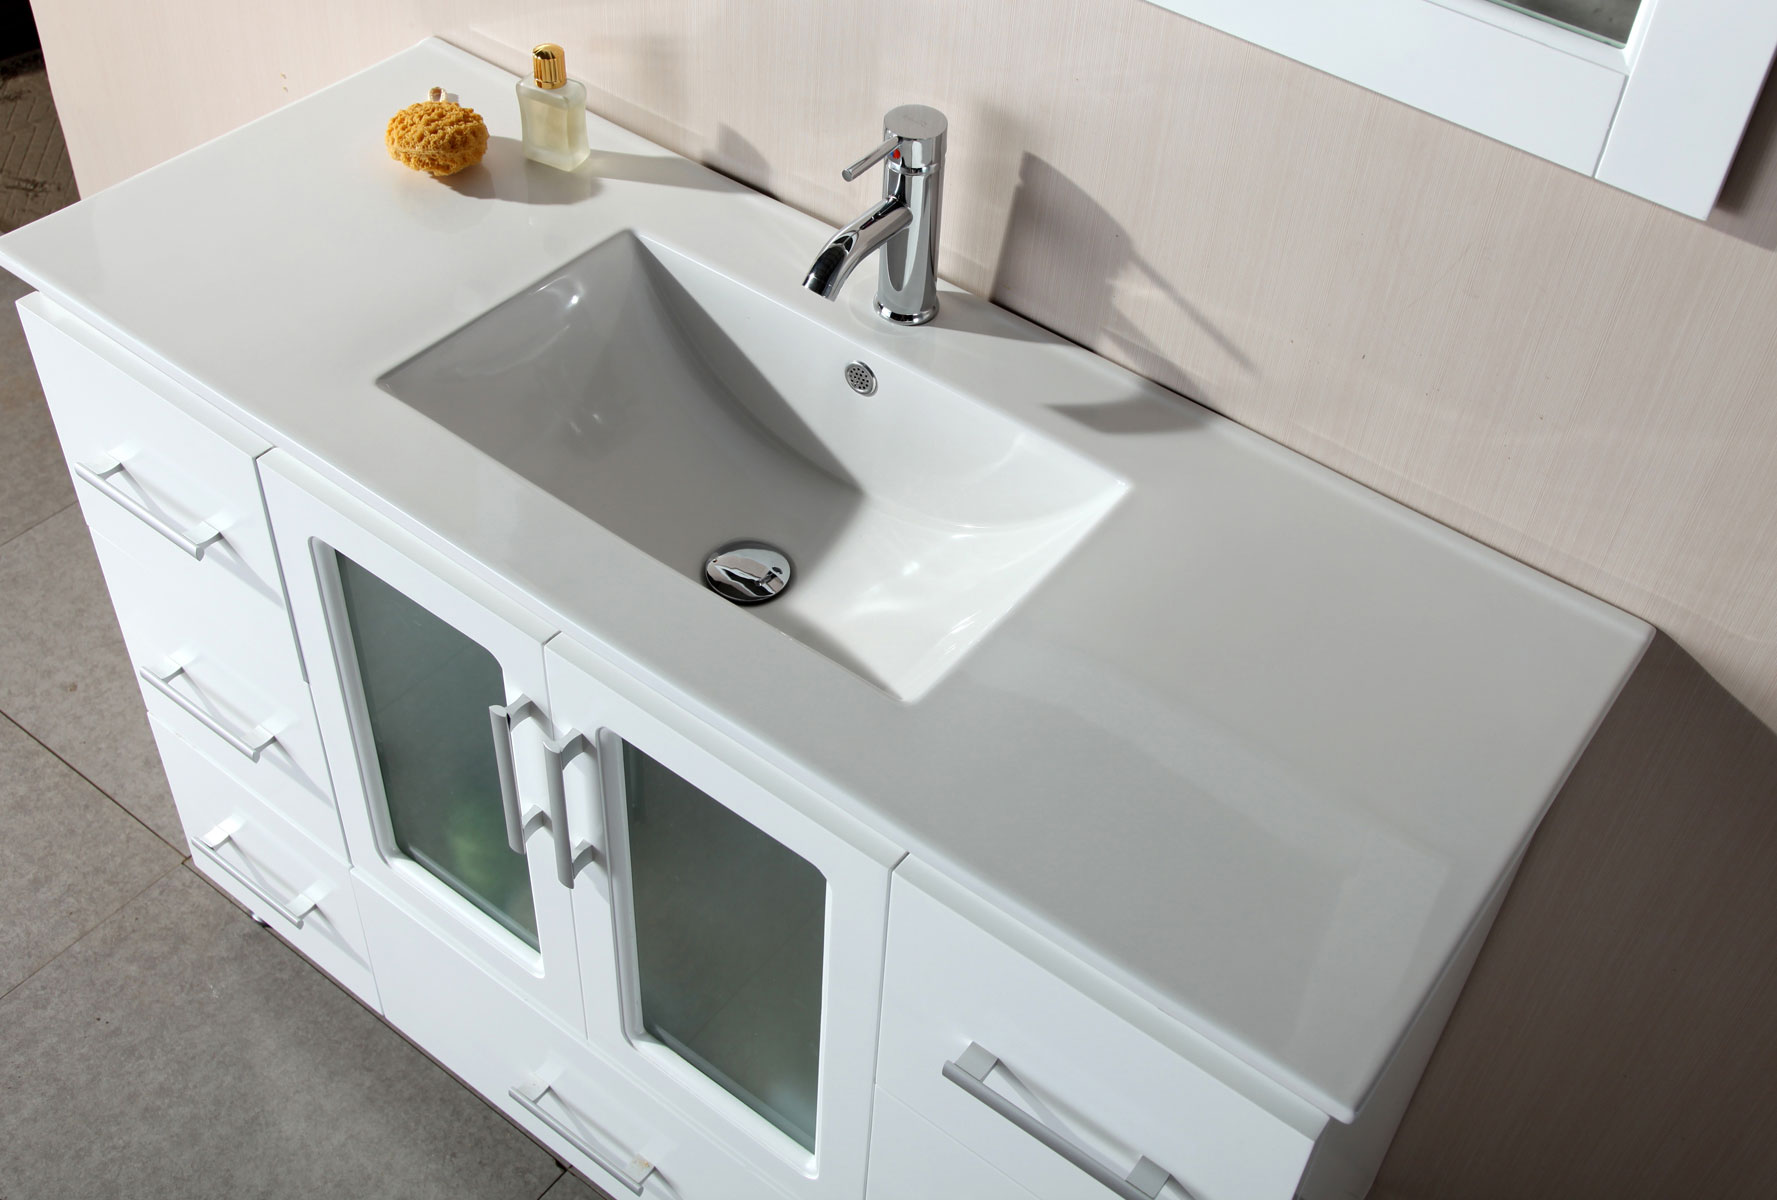 48 Bathroom Vanity Archives Faucets Mosaic Kitchen Supplies Bathroom Supplies And Much More At The Lowerst Rates